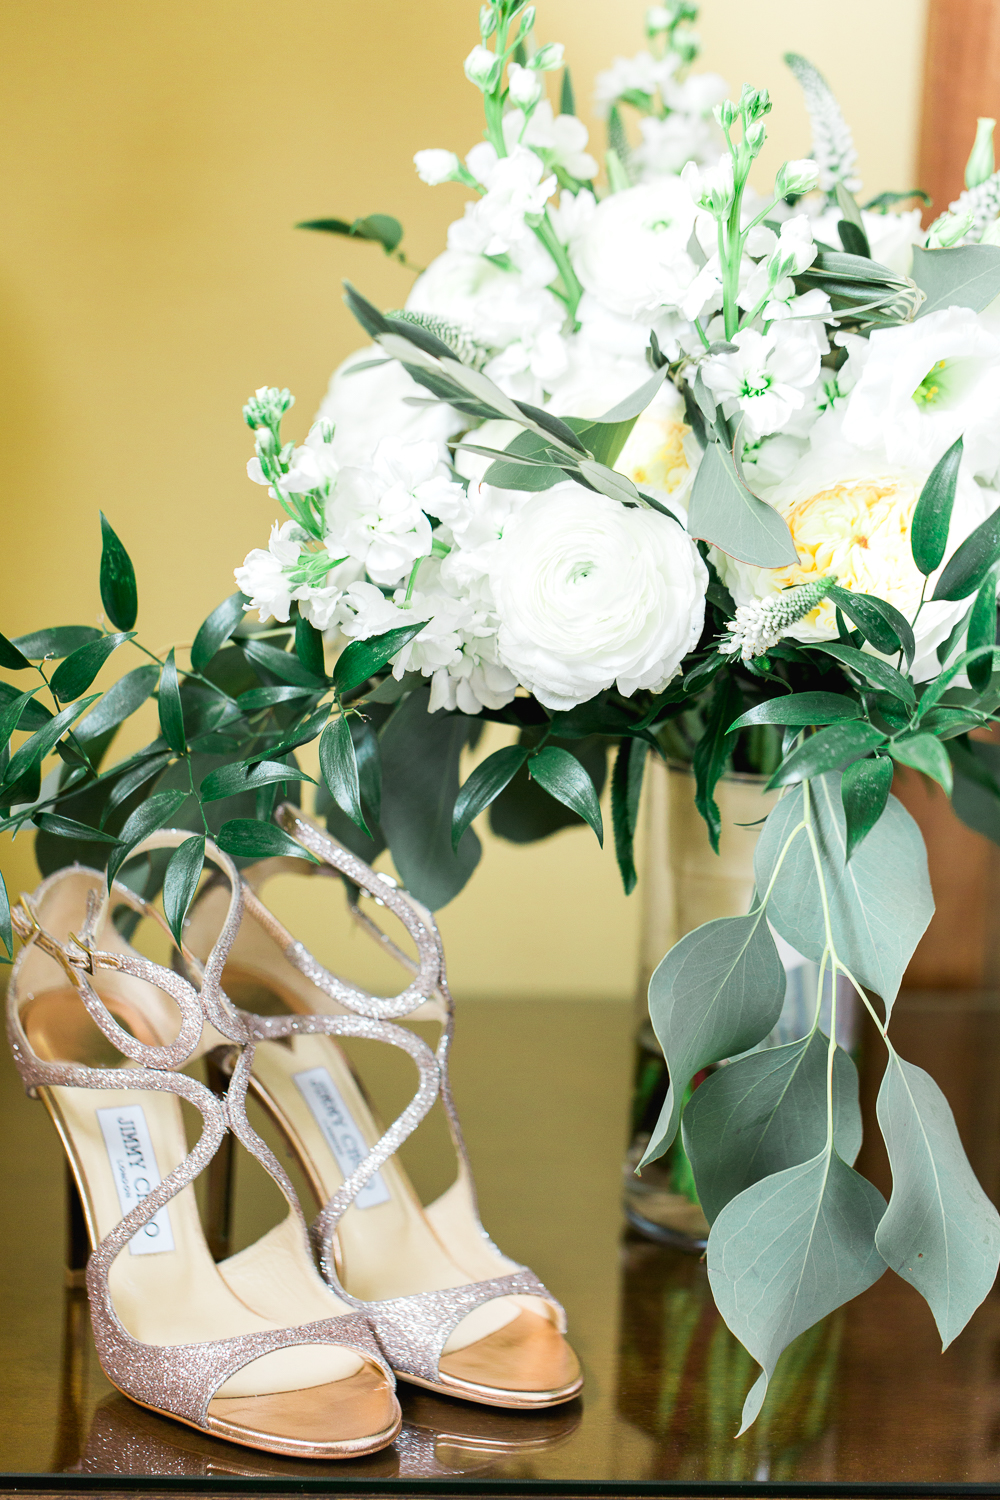 Jimmy Choo heels and bride's bouquet